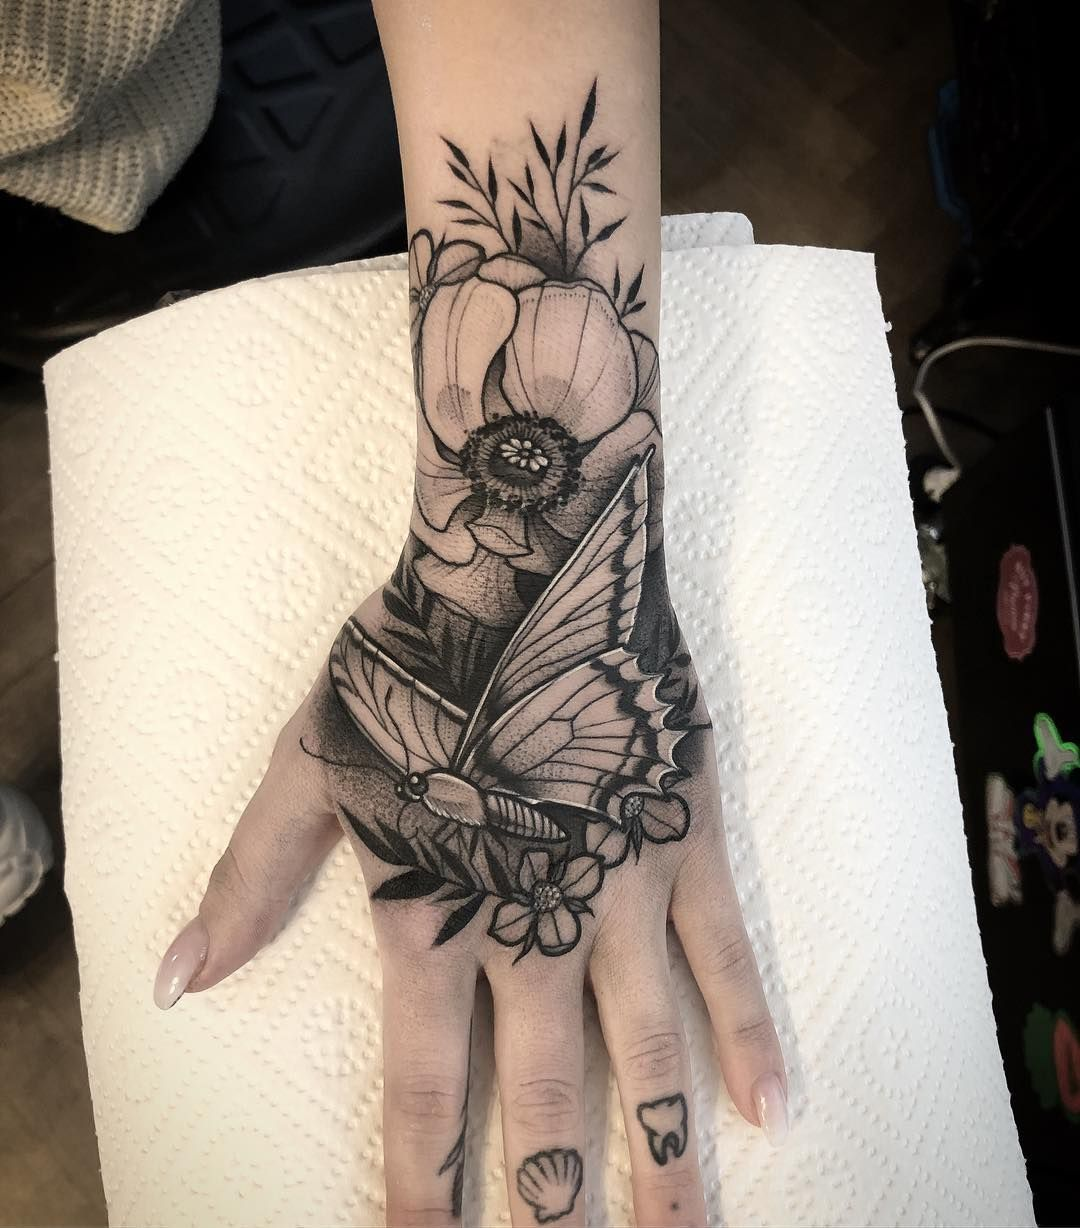 Another one and i want MORE 🖤 blacktattoo tattoo